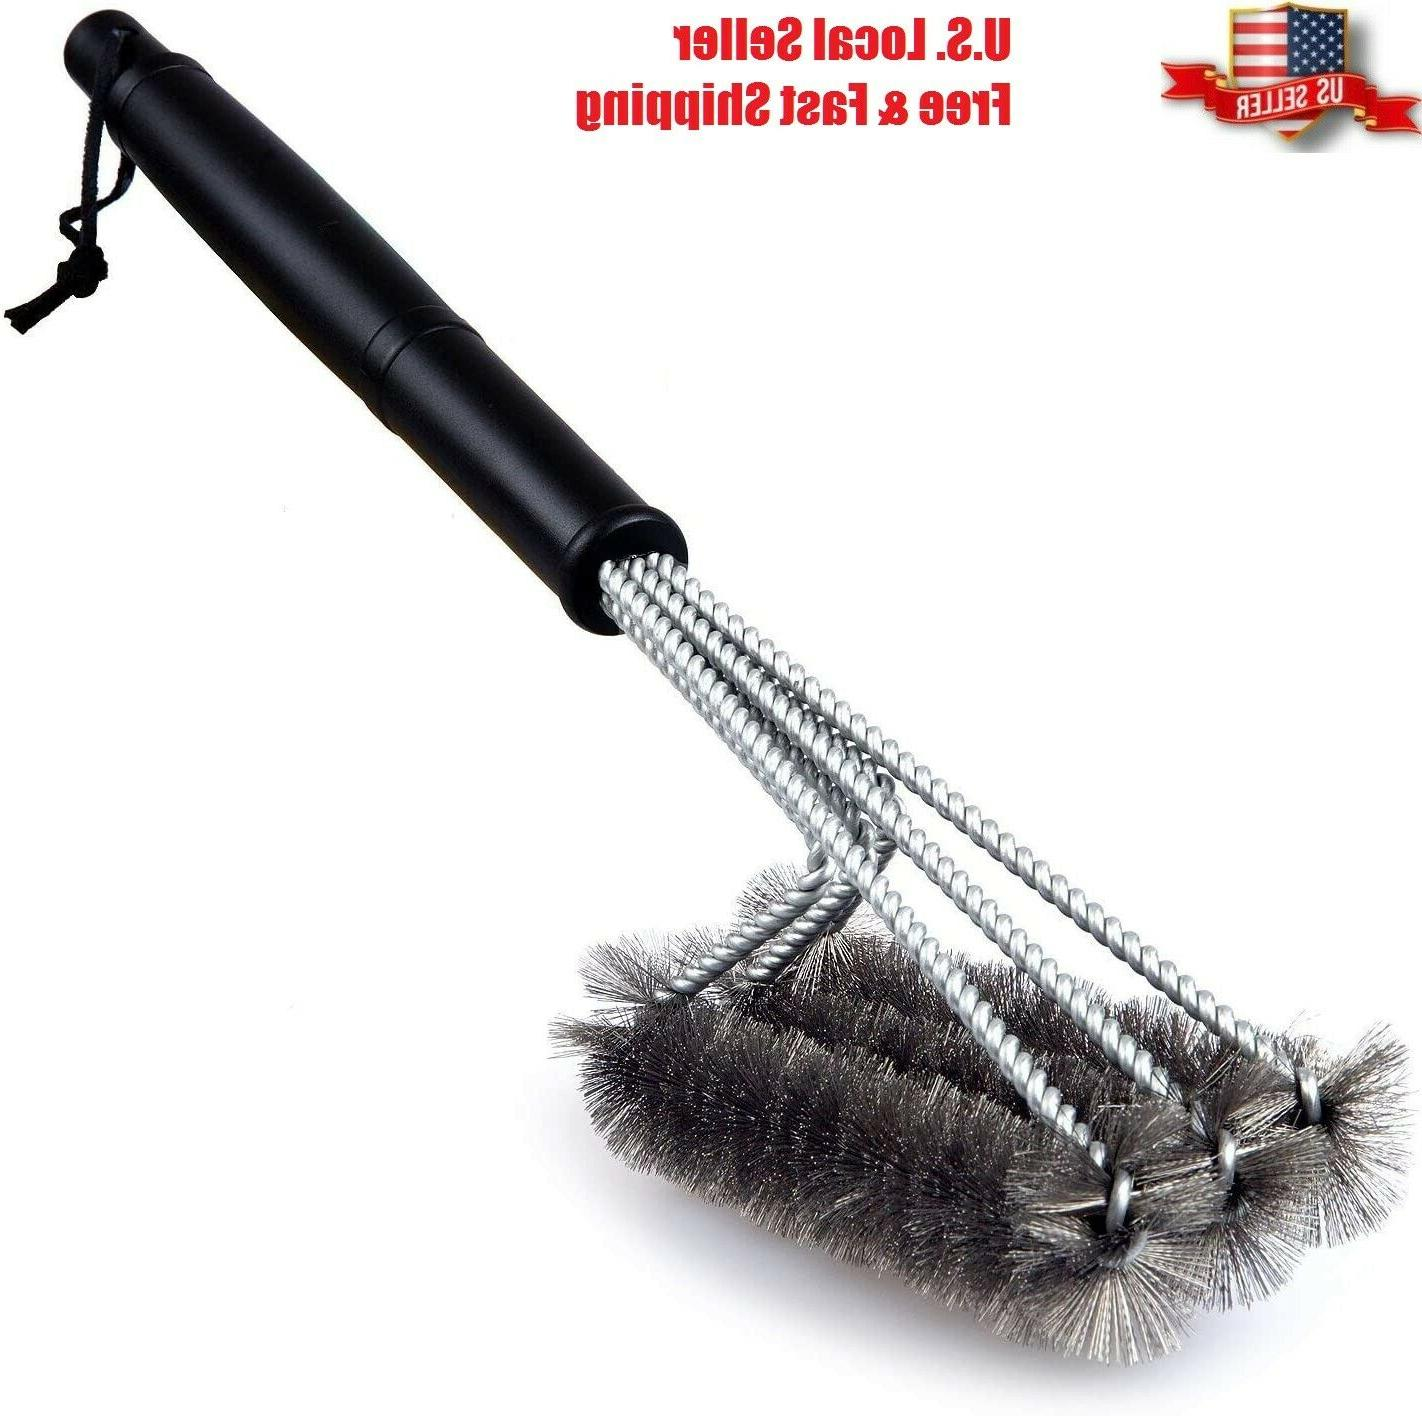 bbq grill brush barbecue grill grate cleaner